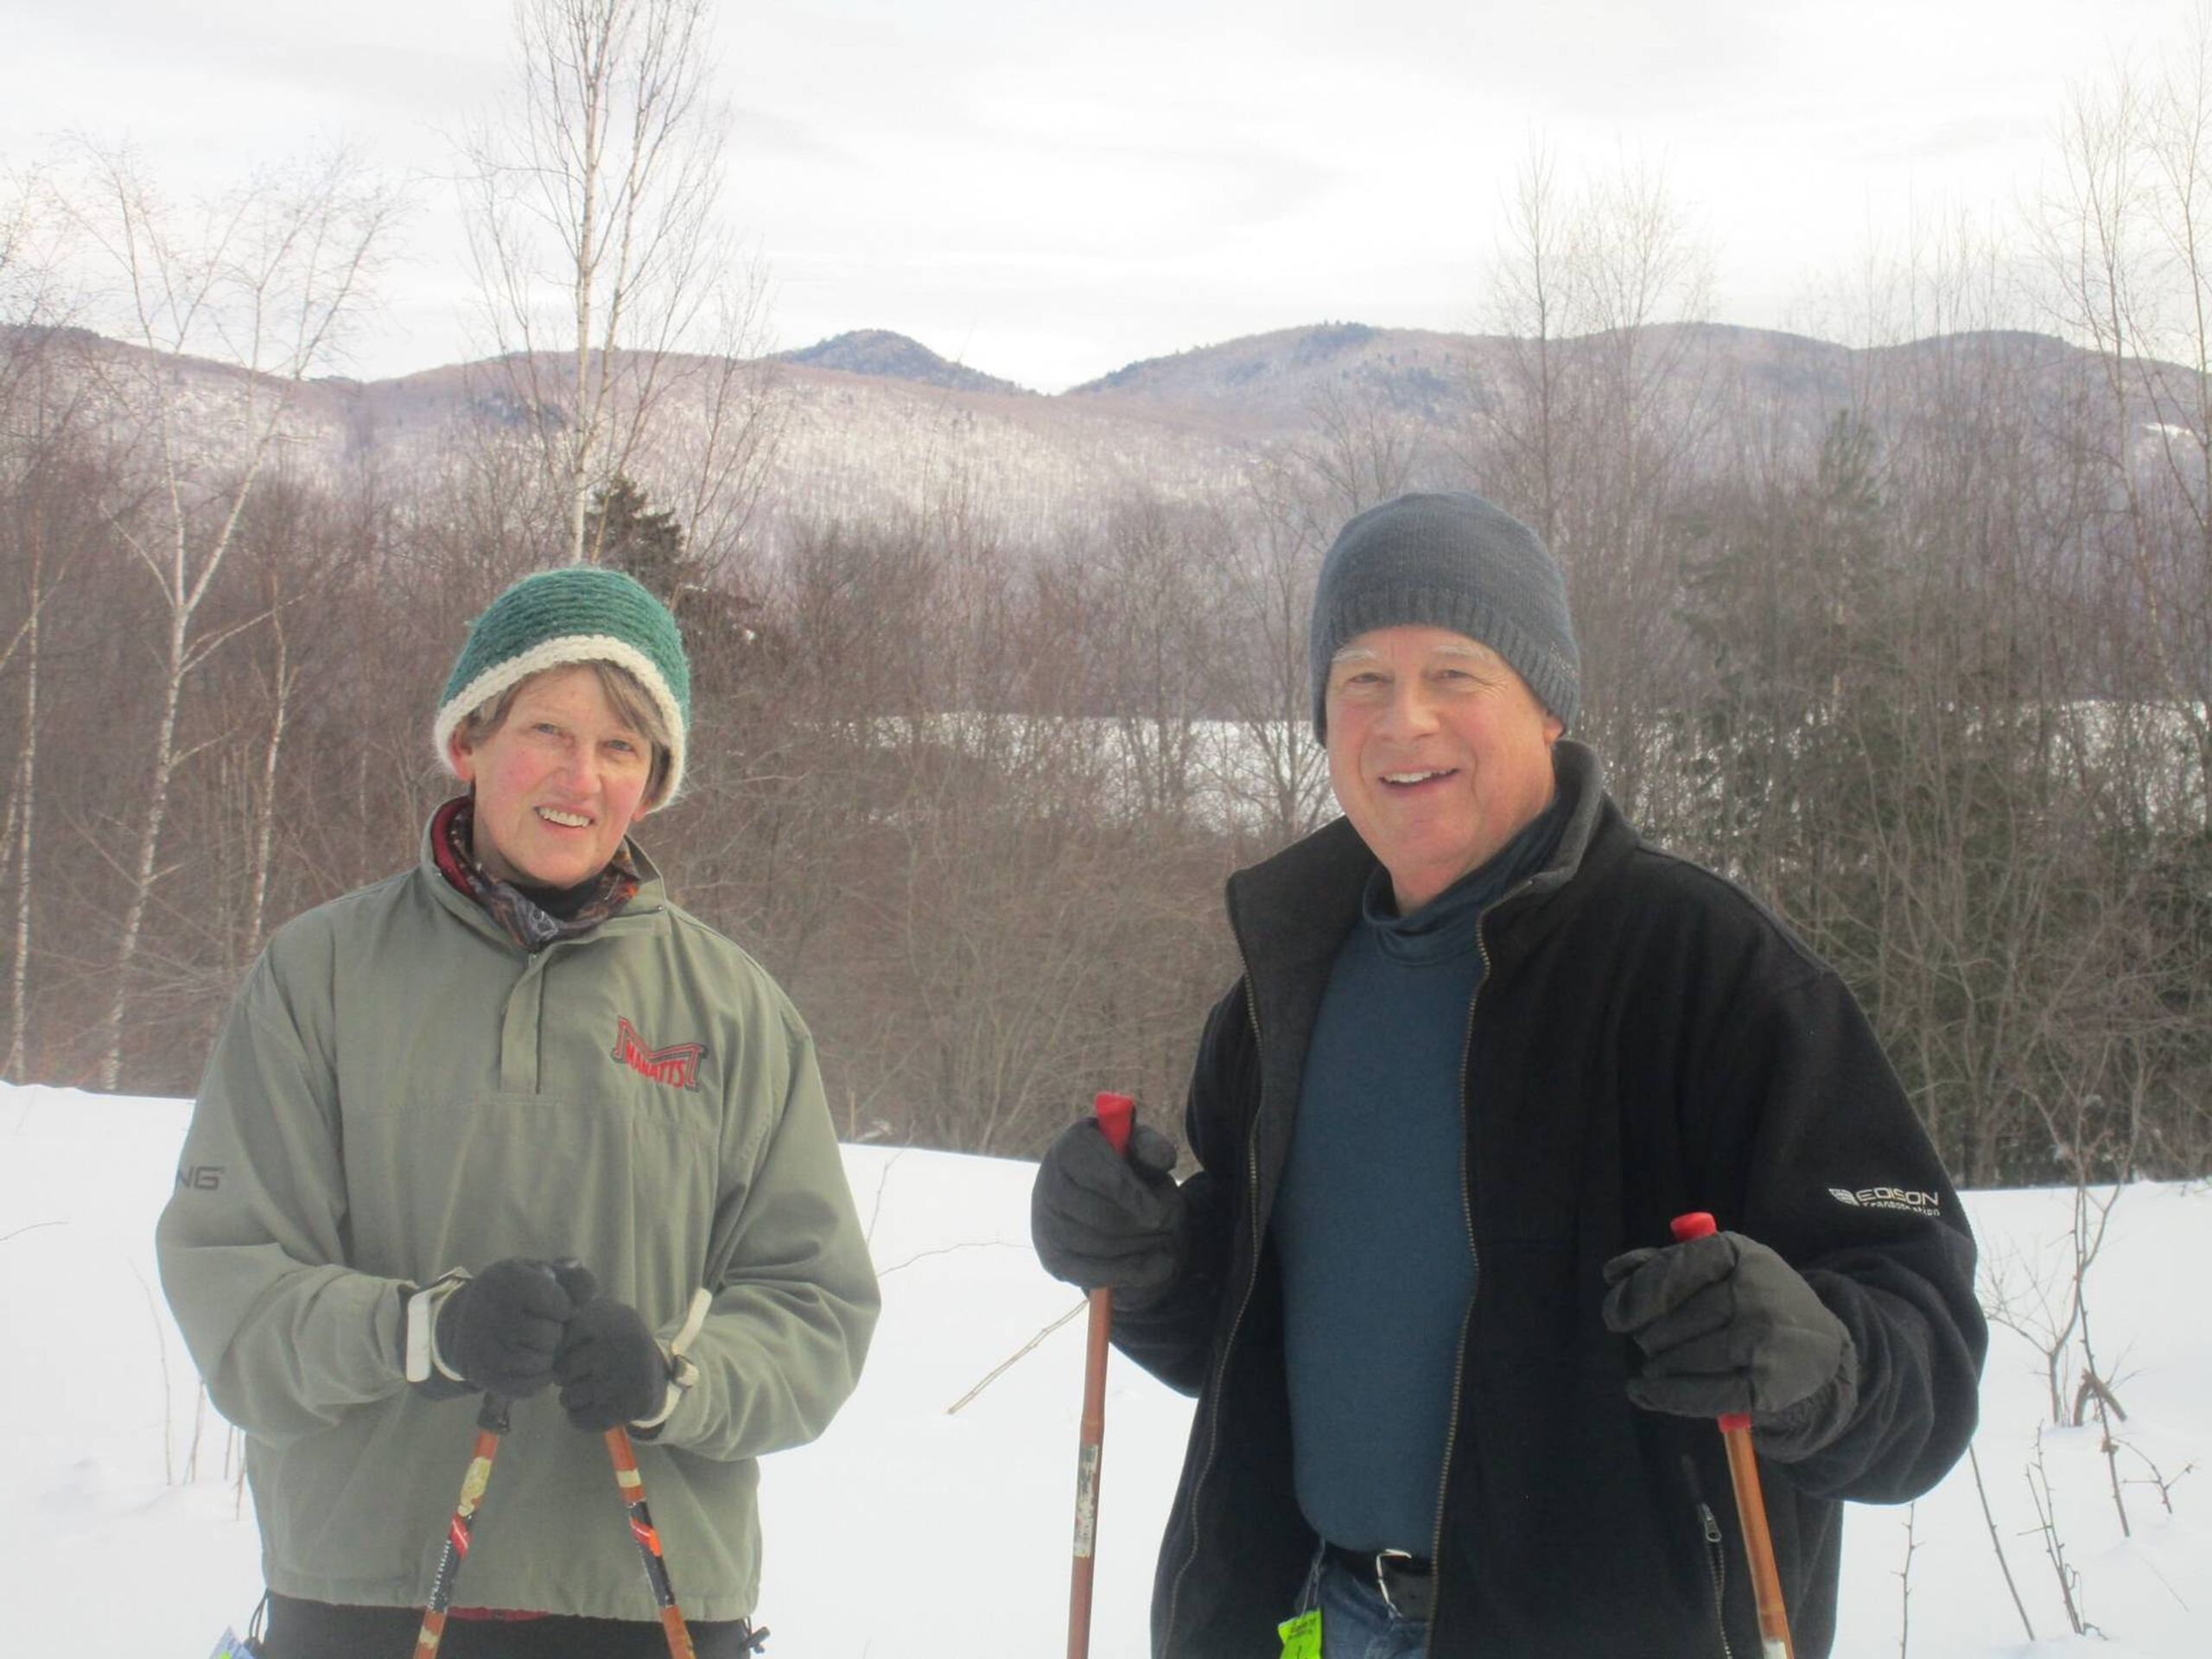 Peg and Bob Soule of Wallingford, Vt., at Mountain Top in Chittenden, Vt., Next Avenue, embrace joys of winter